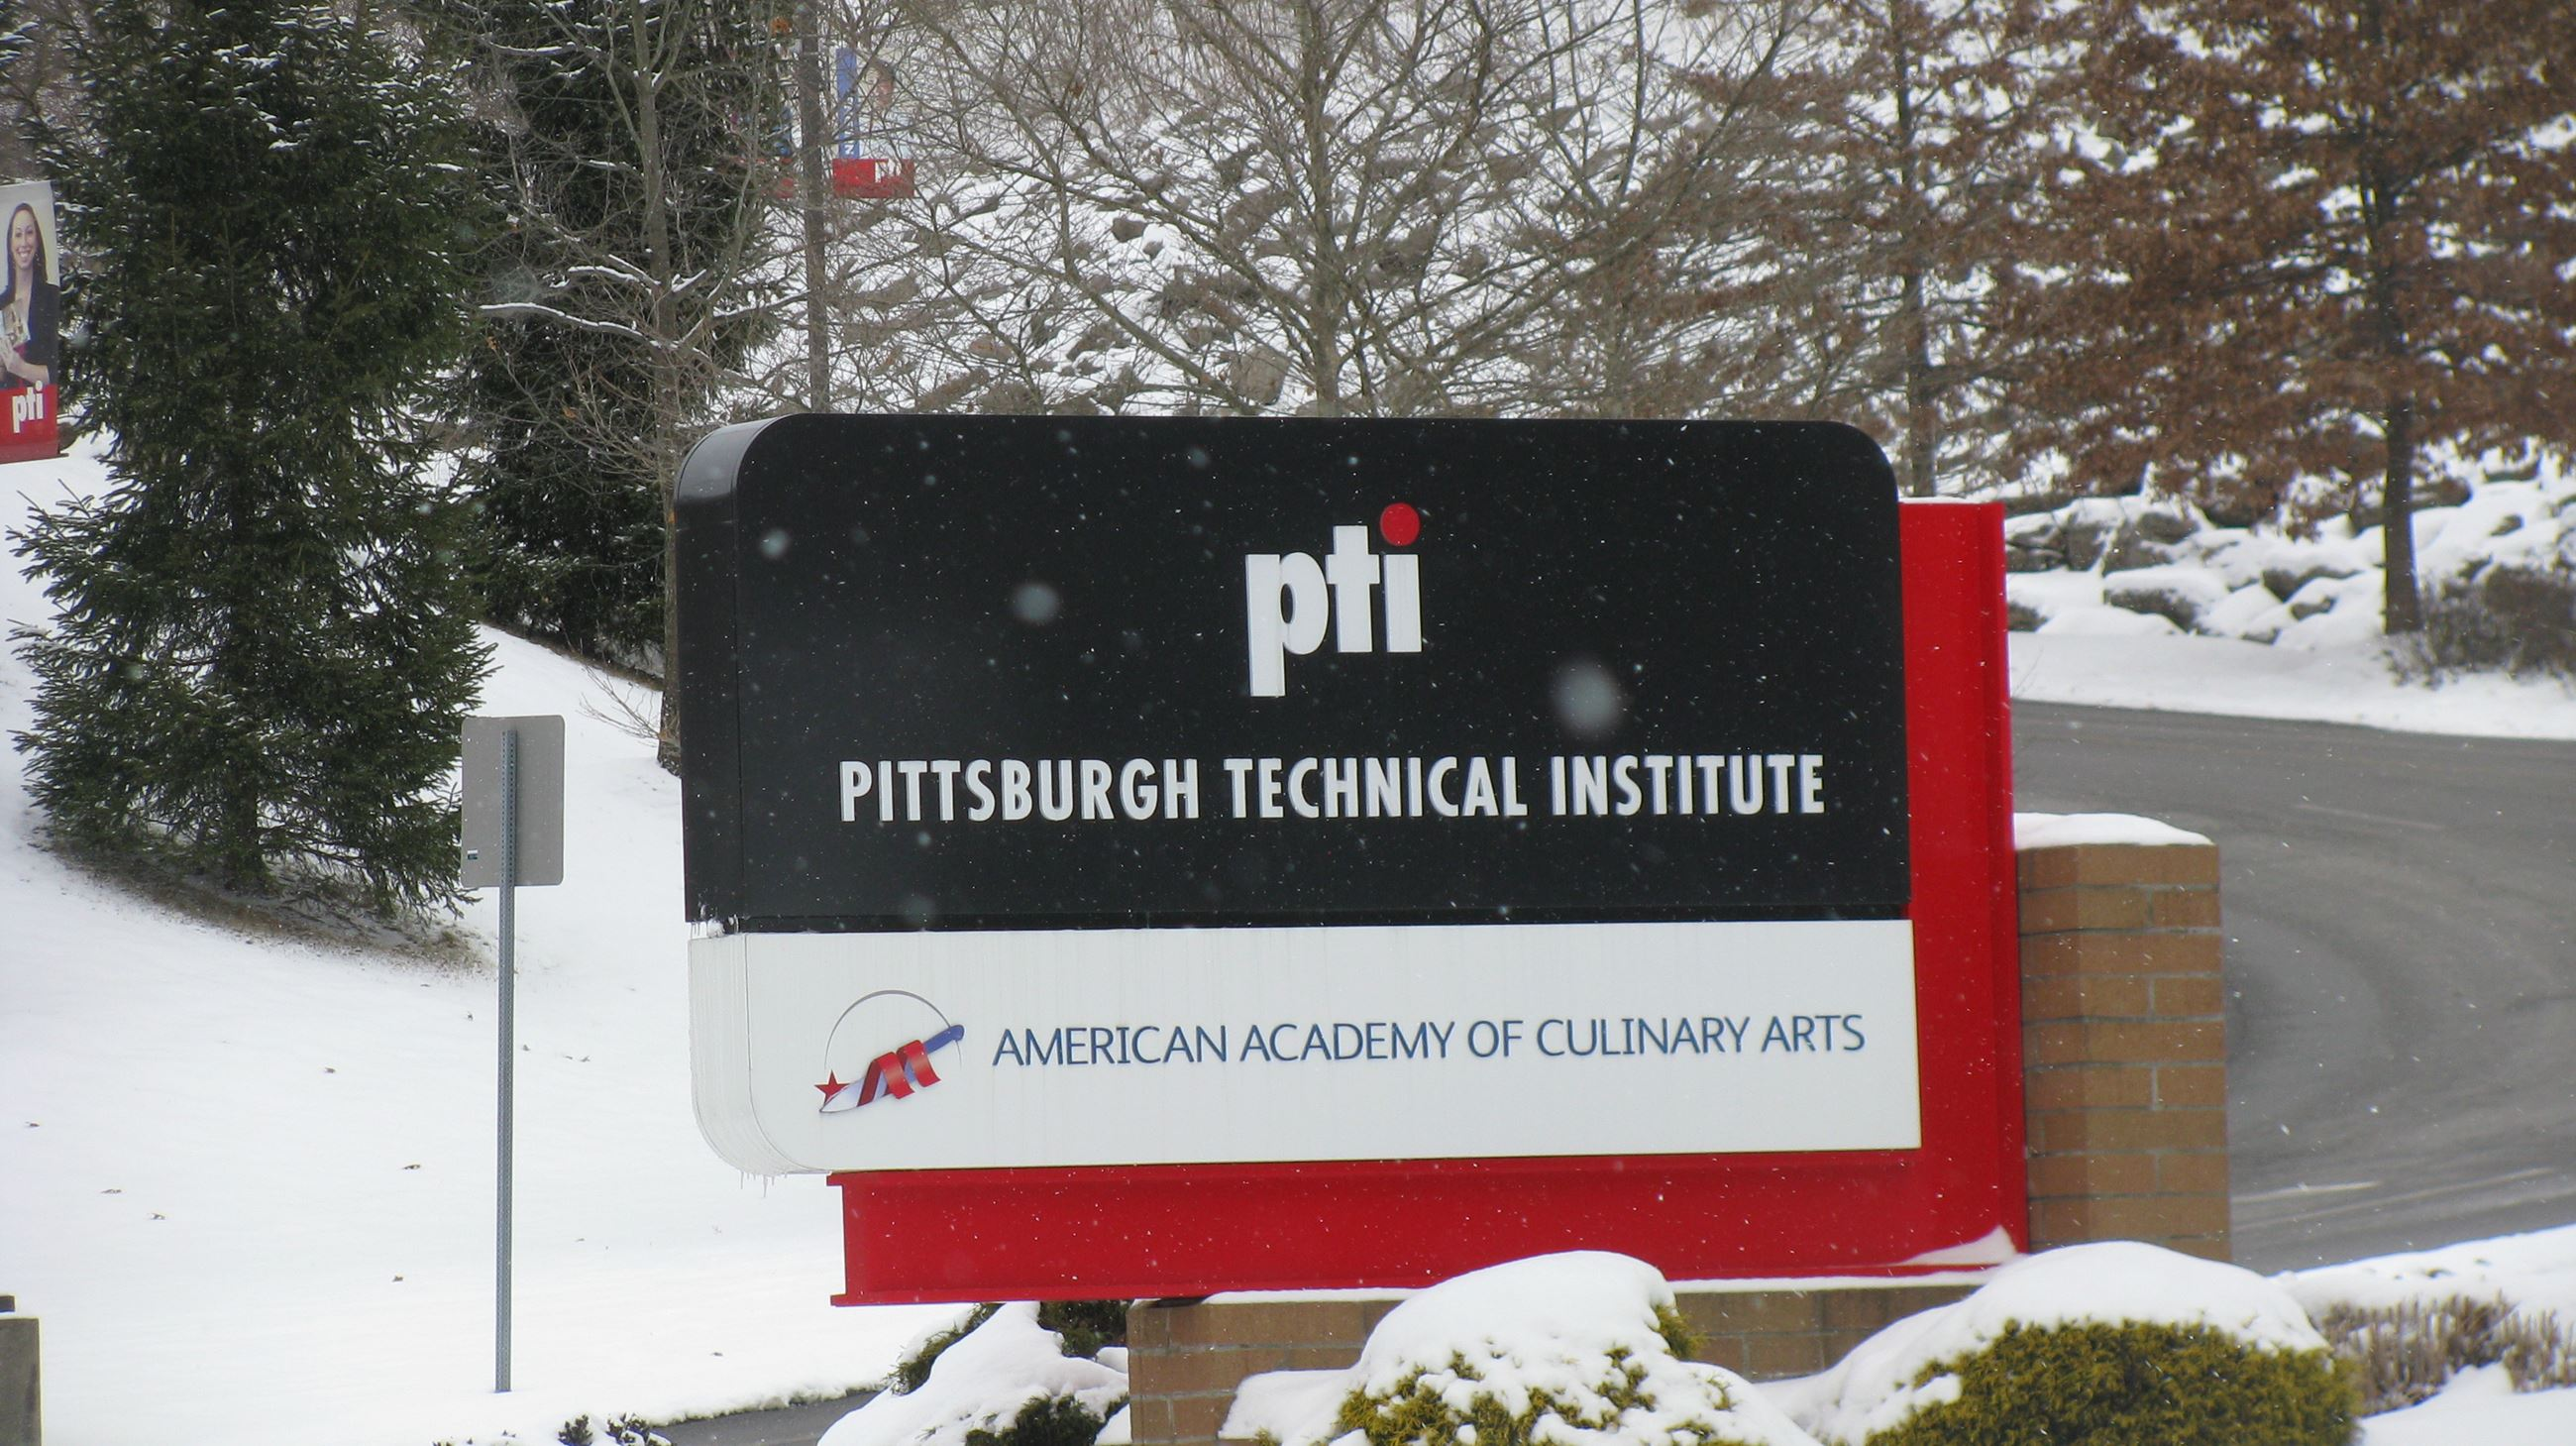 Pittsburgh Technical Institute Sign